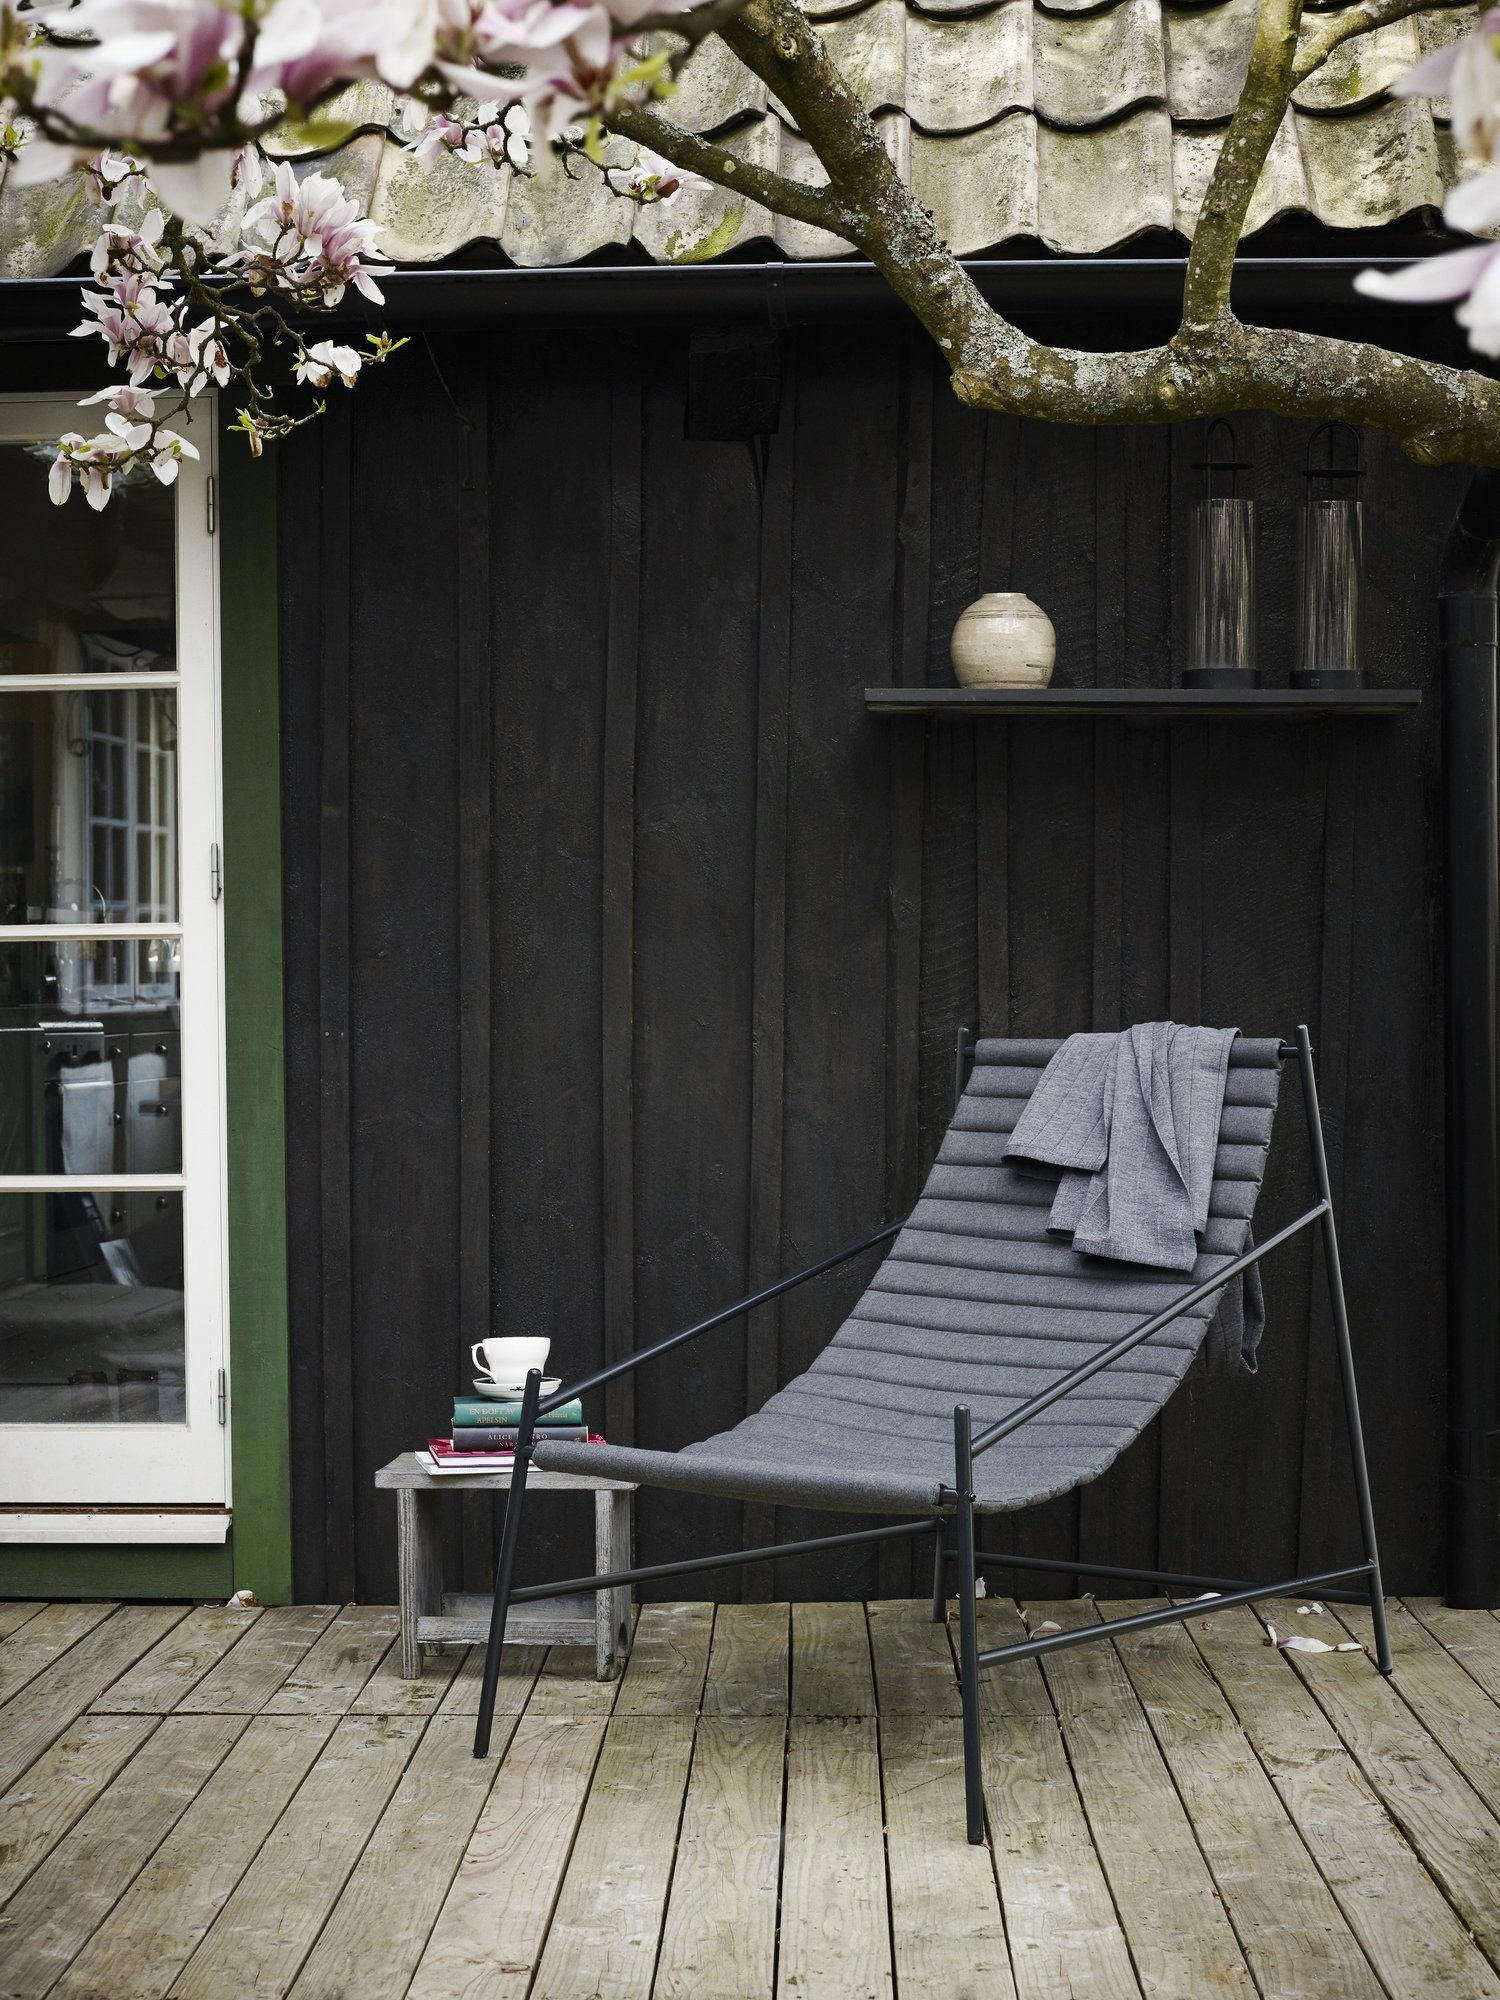 Discount Deck Furniture Hang Chair In 2018 Discount Furniture Pinterest Hanging